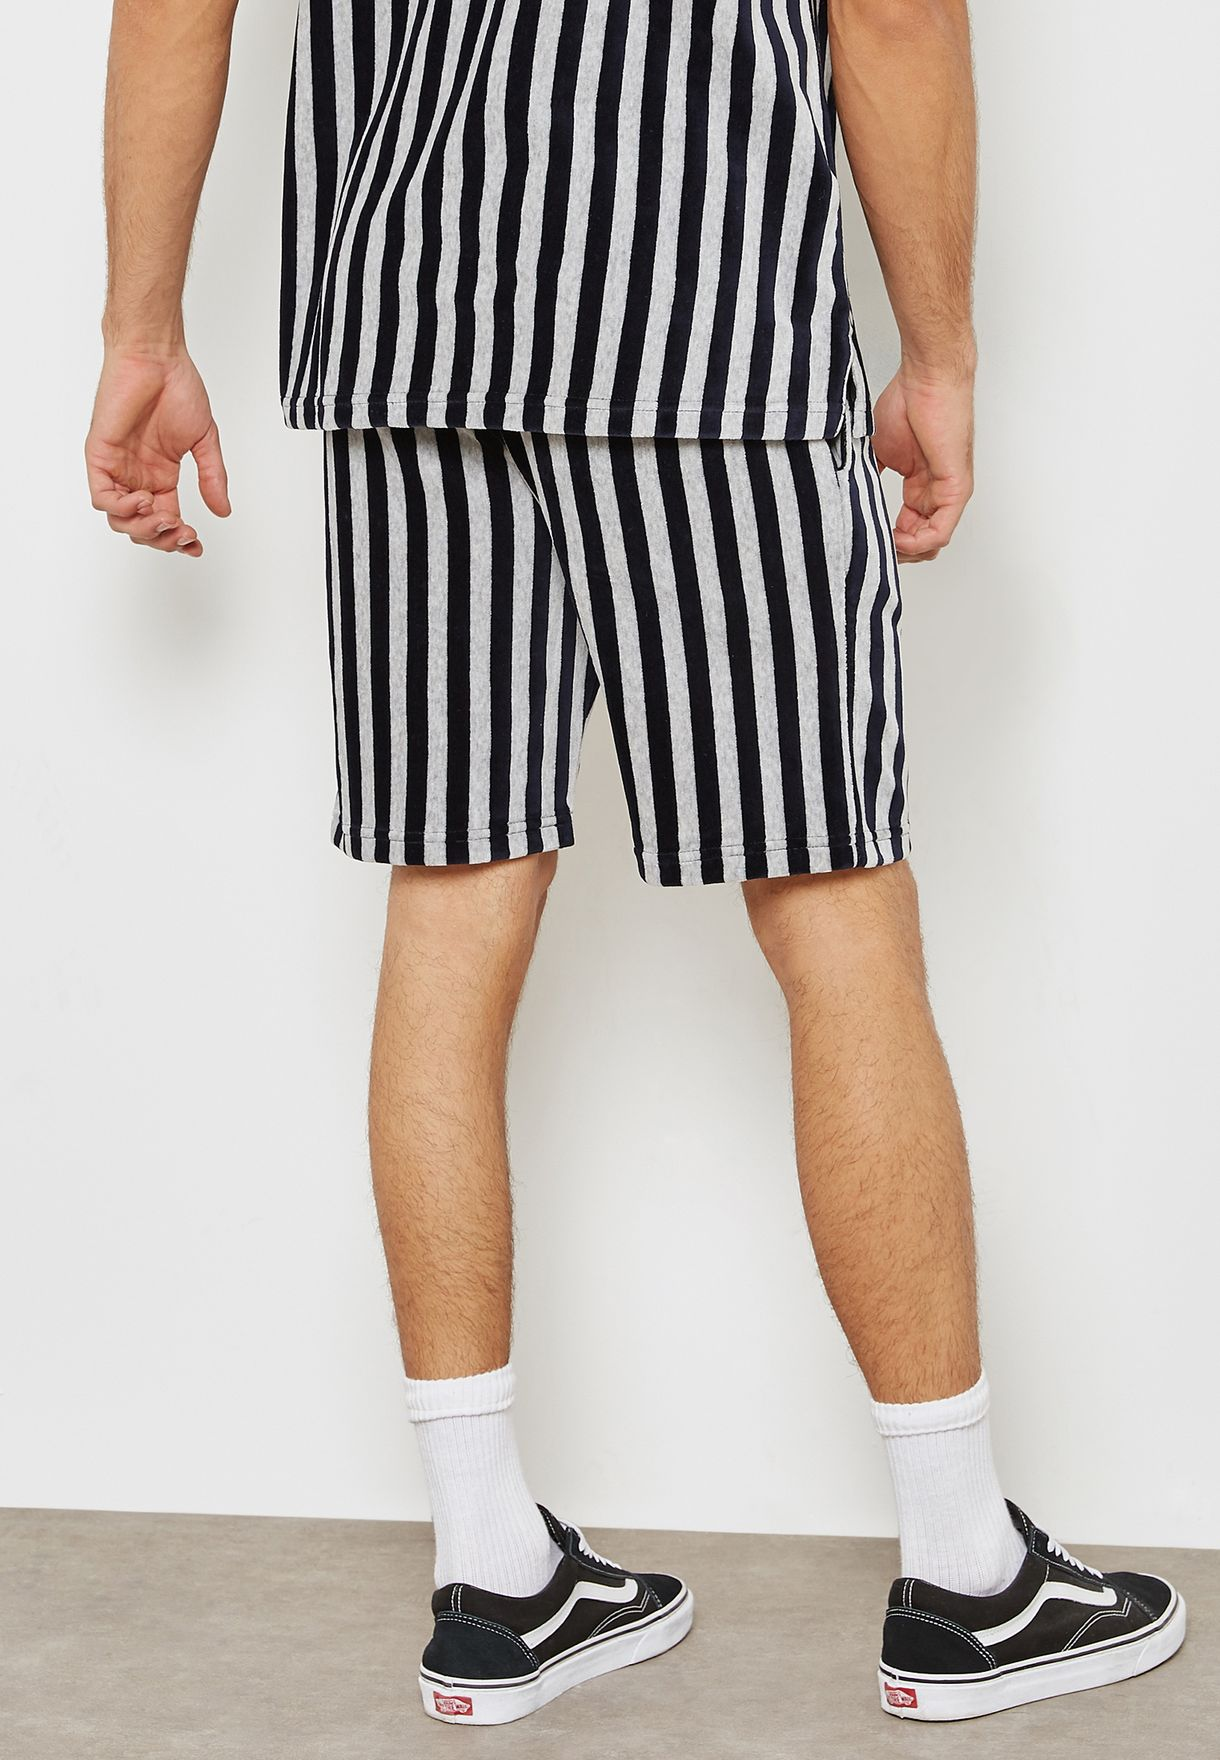 Stripped Towelling Shorts